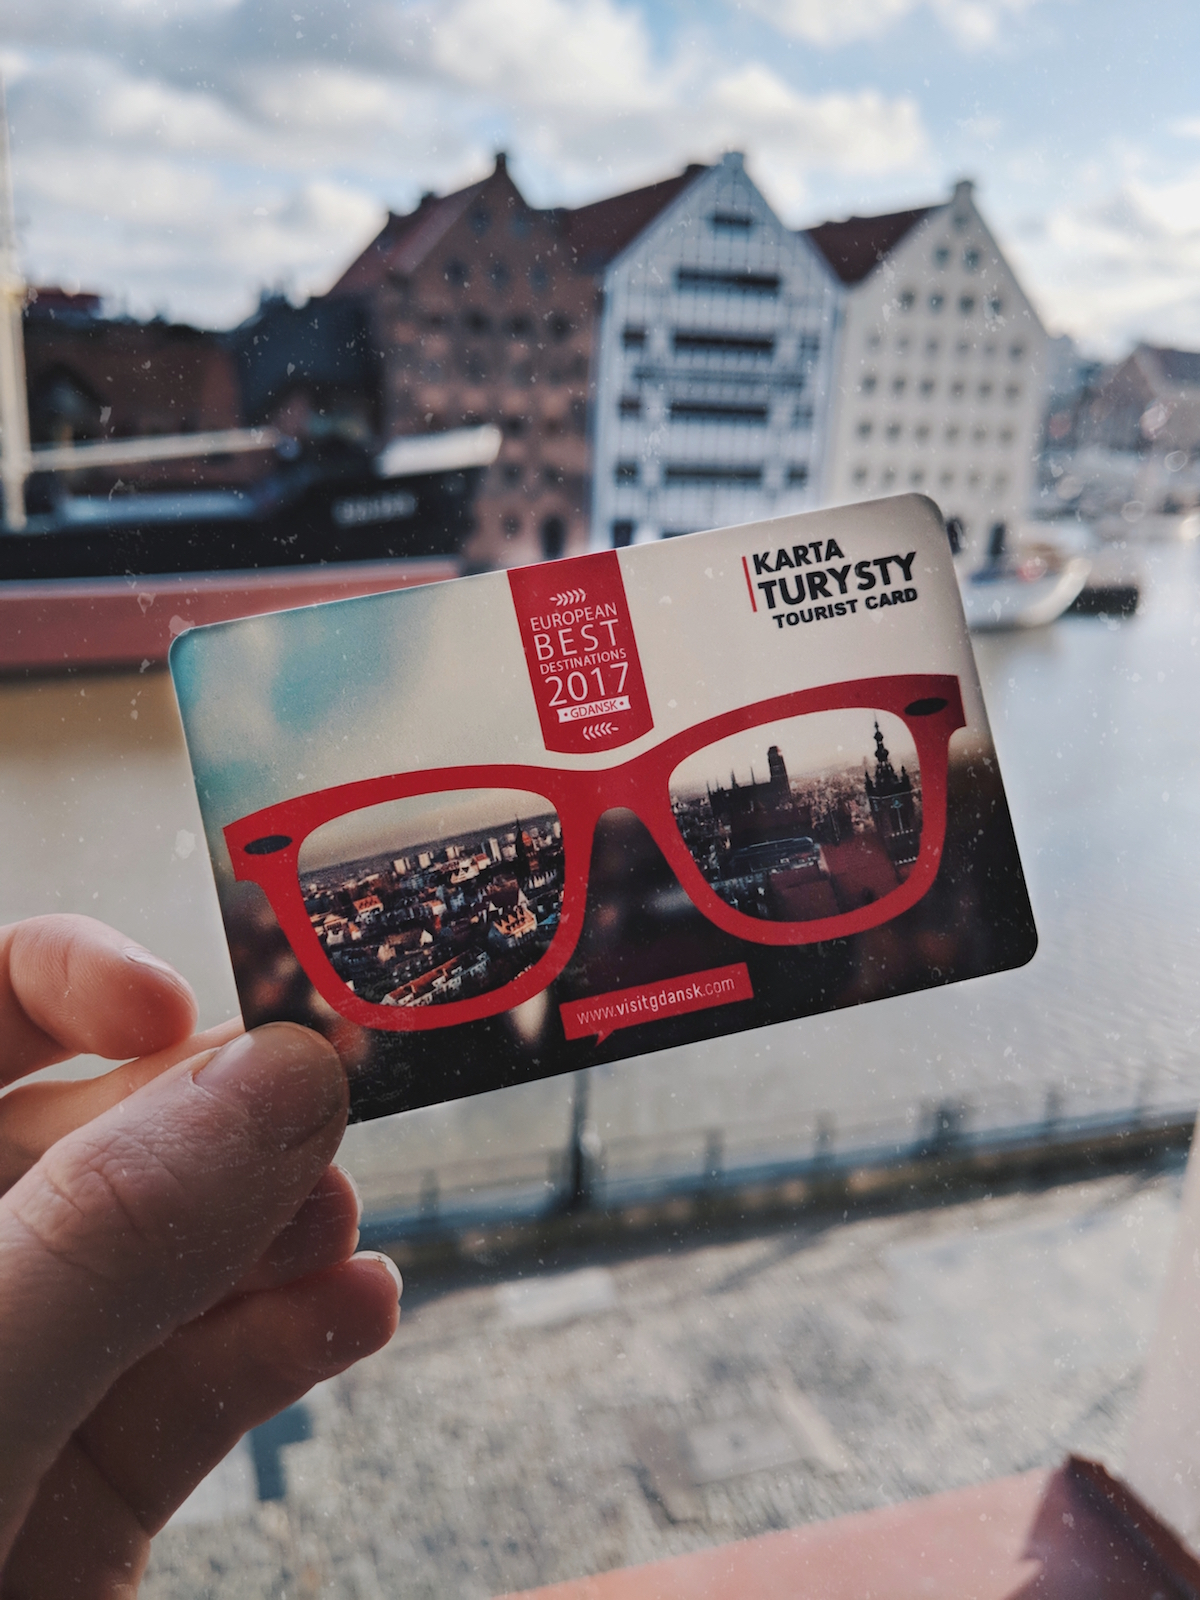 The Gdańsk tourist card grants you access & discounts on attractions across the city!